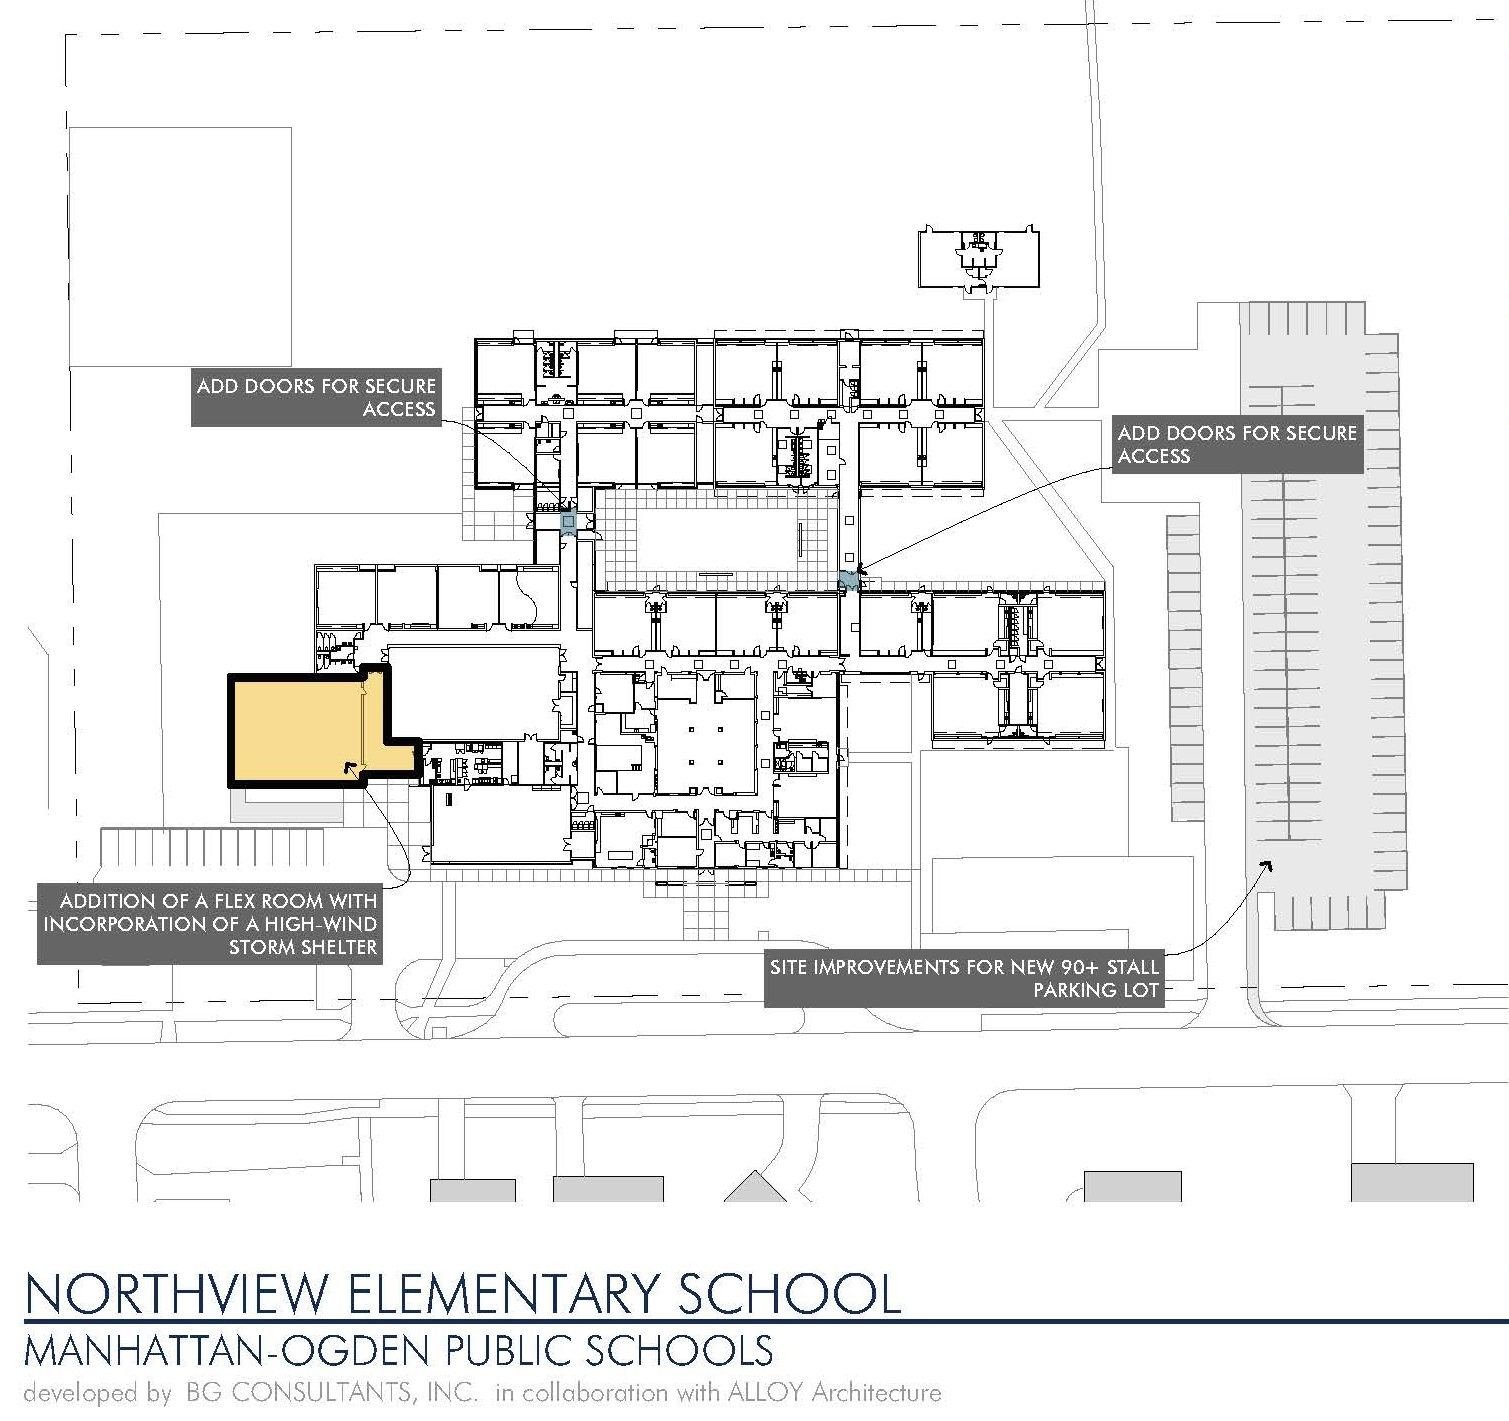 Northview Elementary School